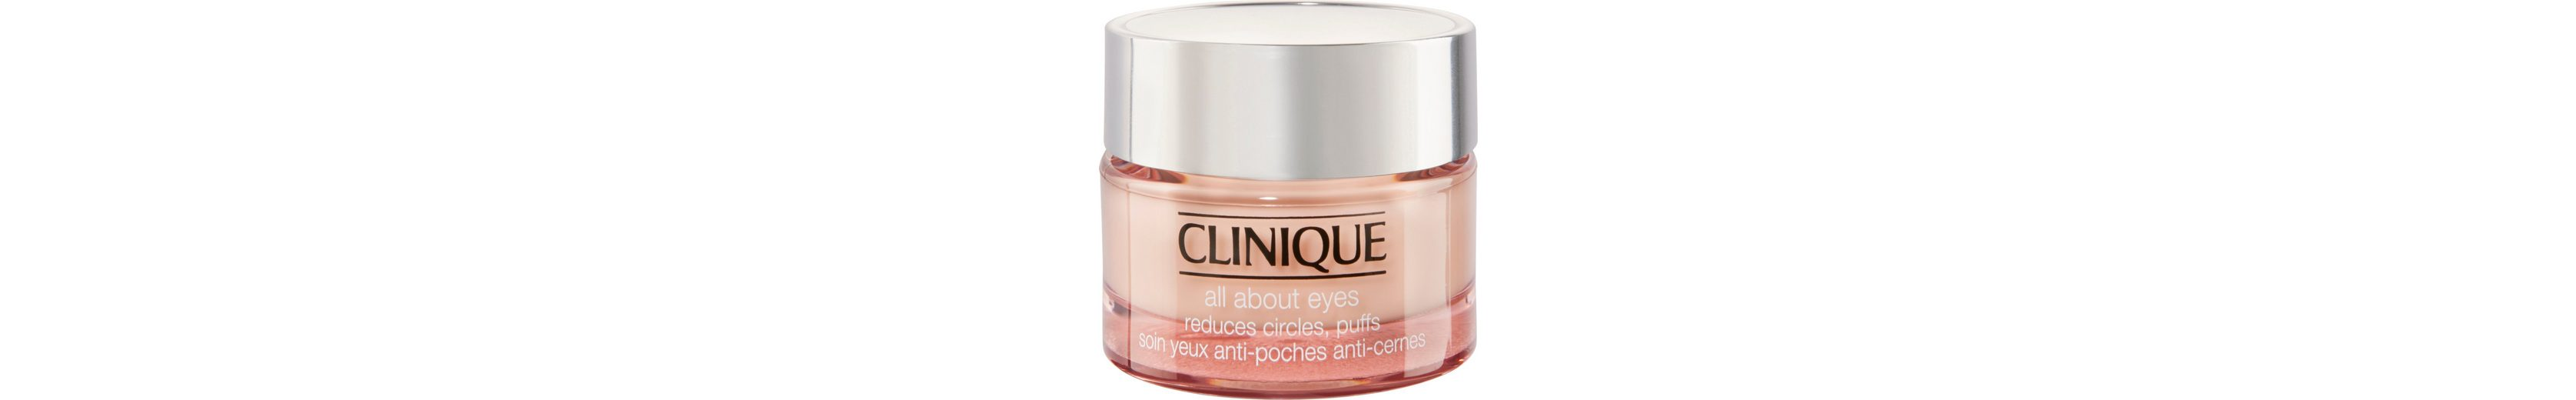 Clinique, »All About Eyes«, Augengel